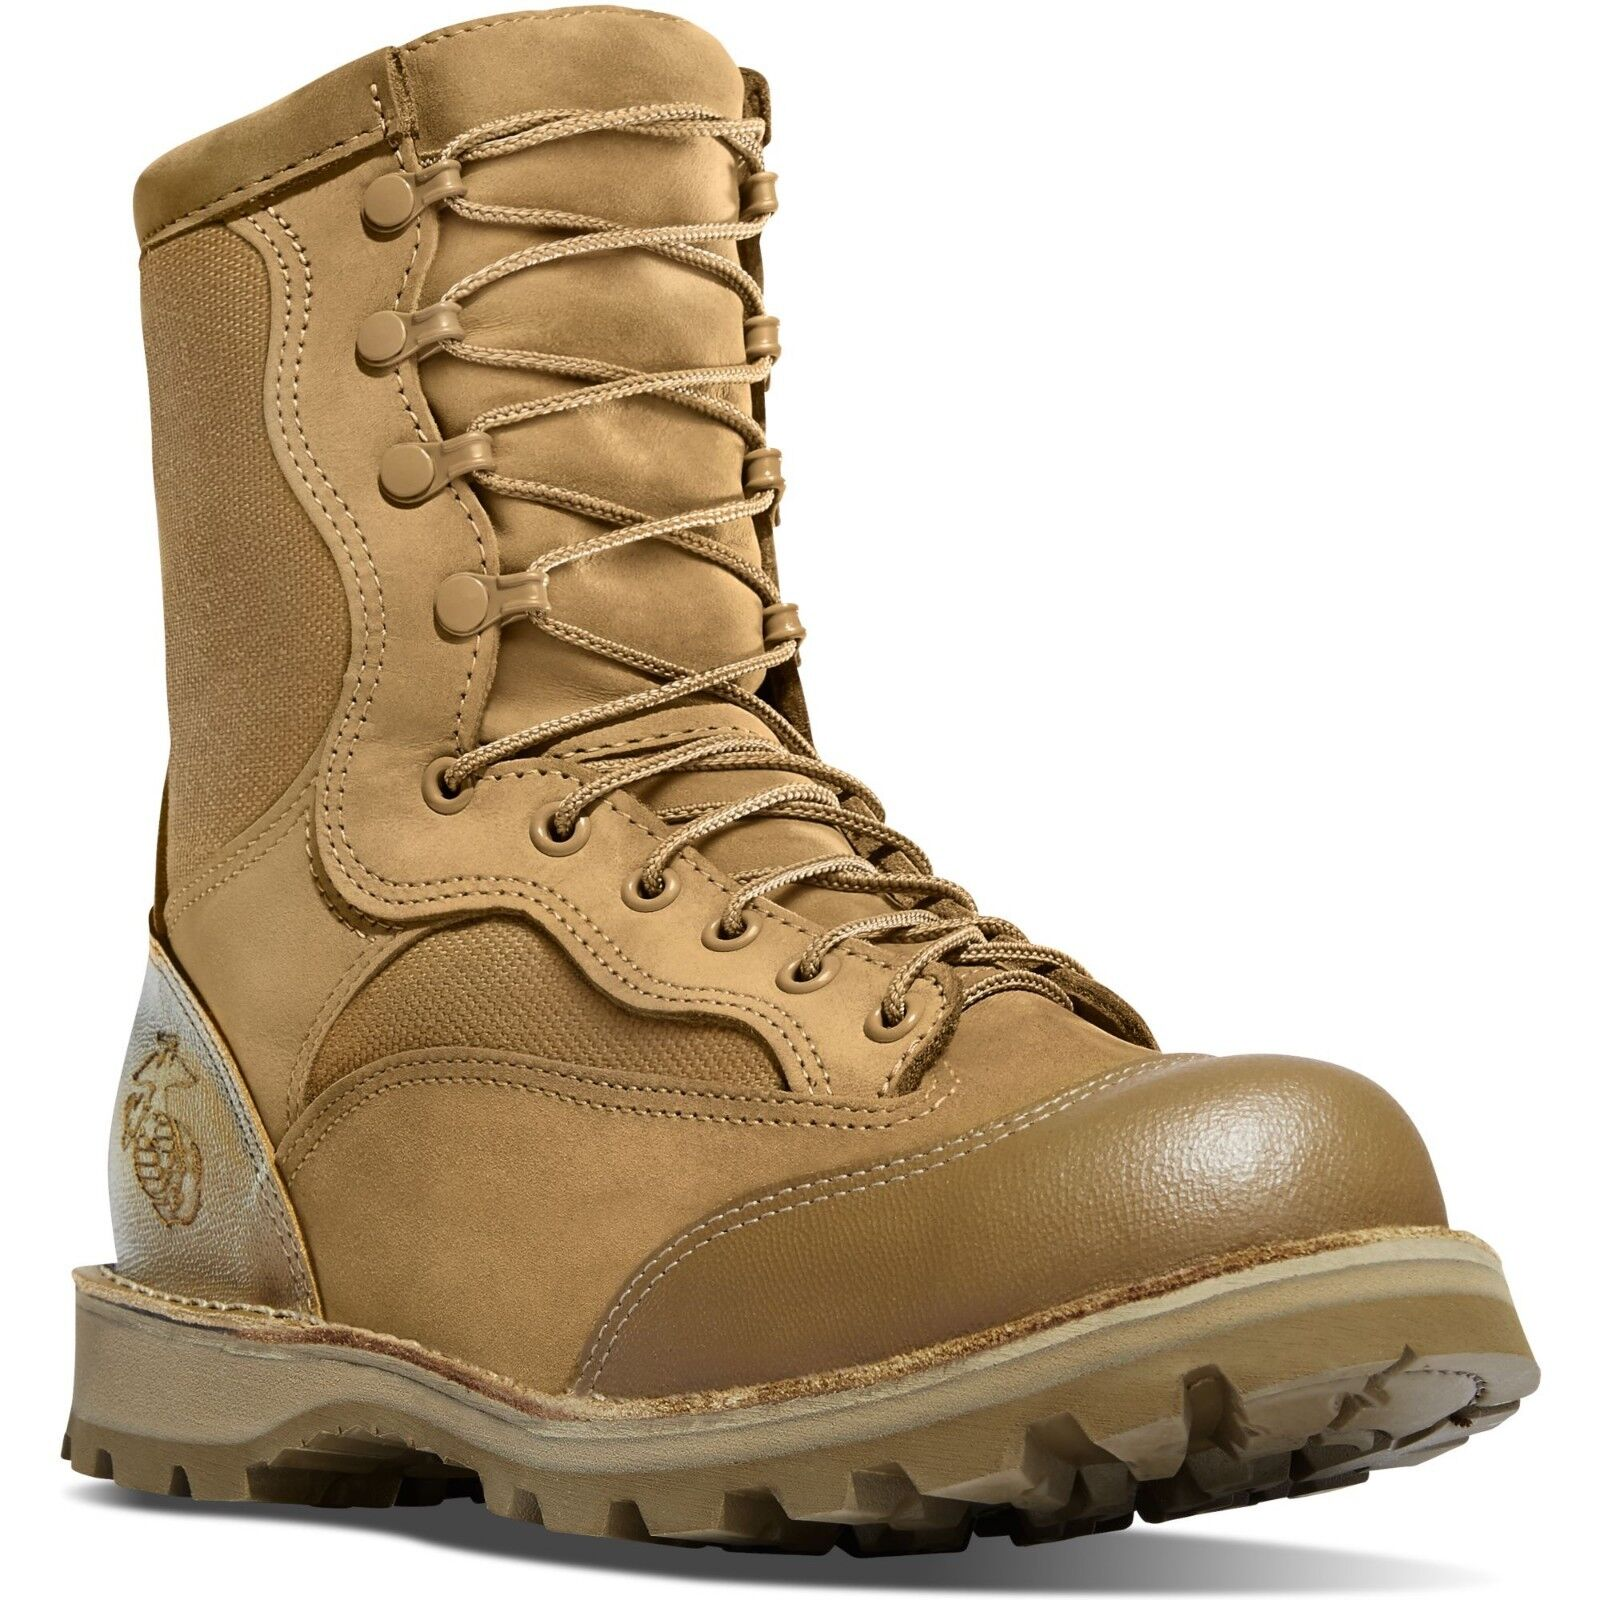 Danner Men's 15610X USMC Rat 8  Mojave Steel Toe EH Military Special Ops Boots